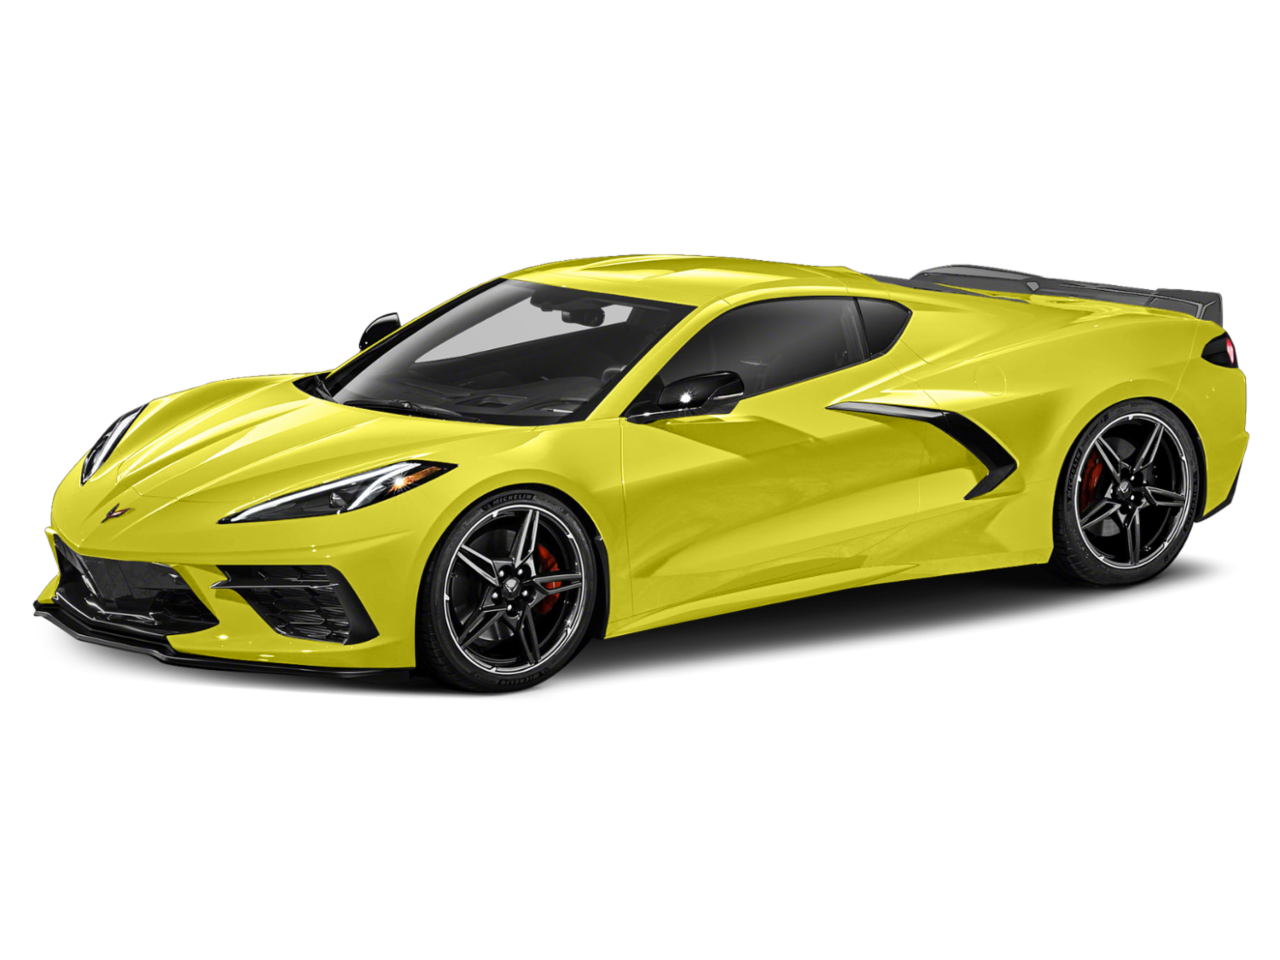 Chevrolet 2020 Corvette 1LT